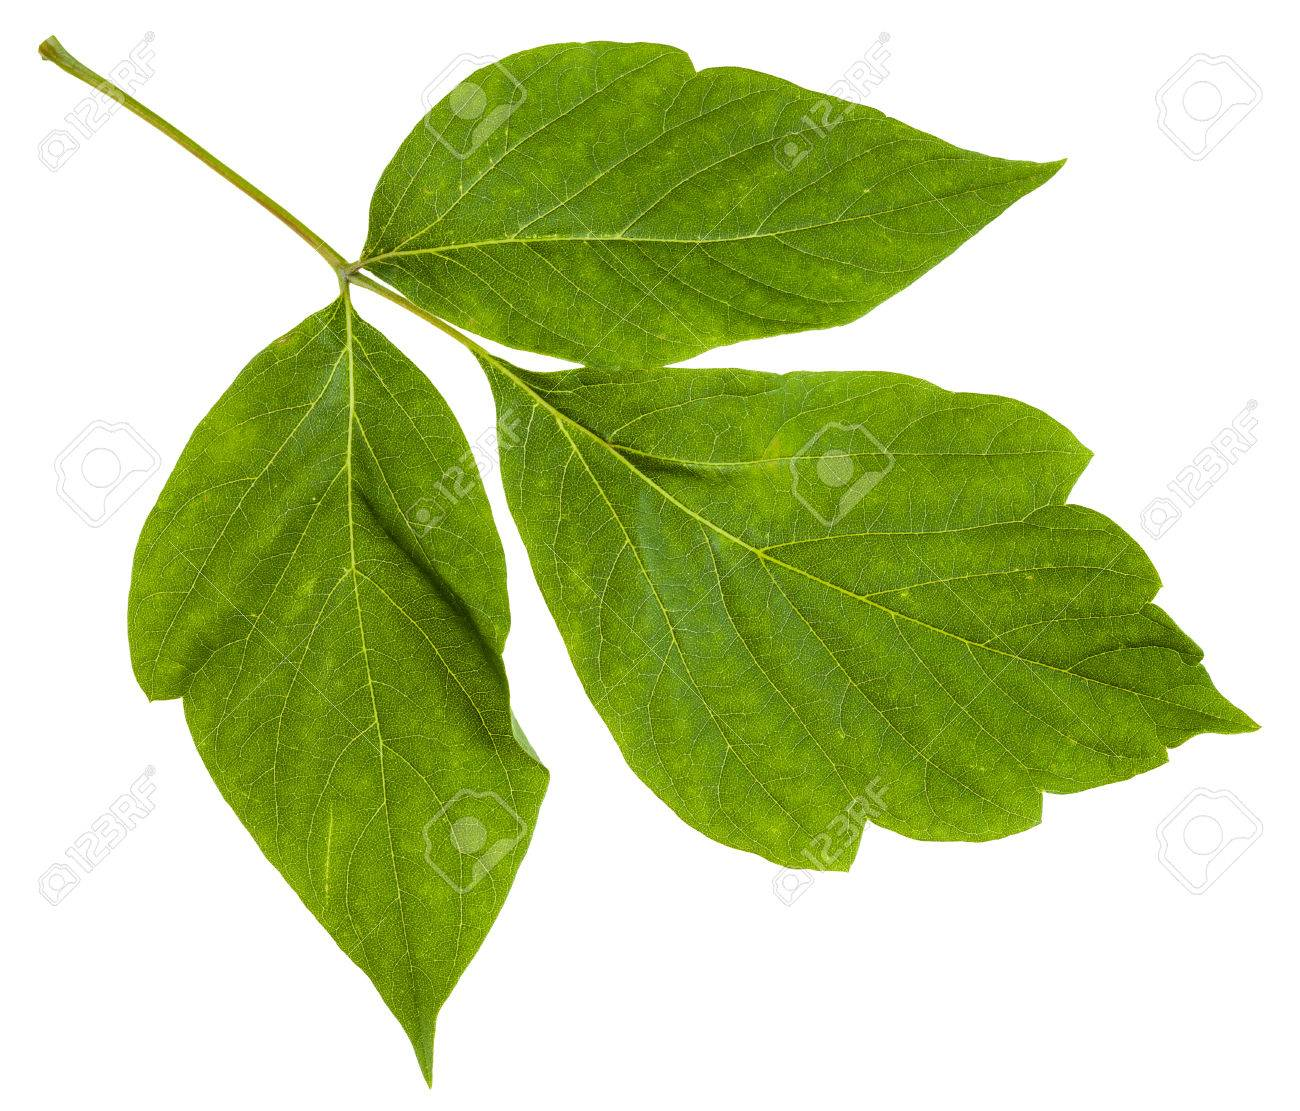 Twig With Green Leaves Of Acer Negundo Maple Ash Tree Isolated